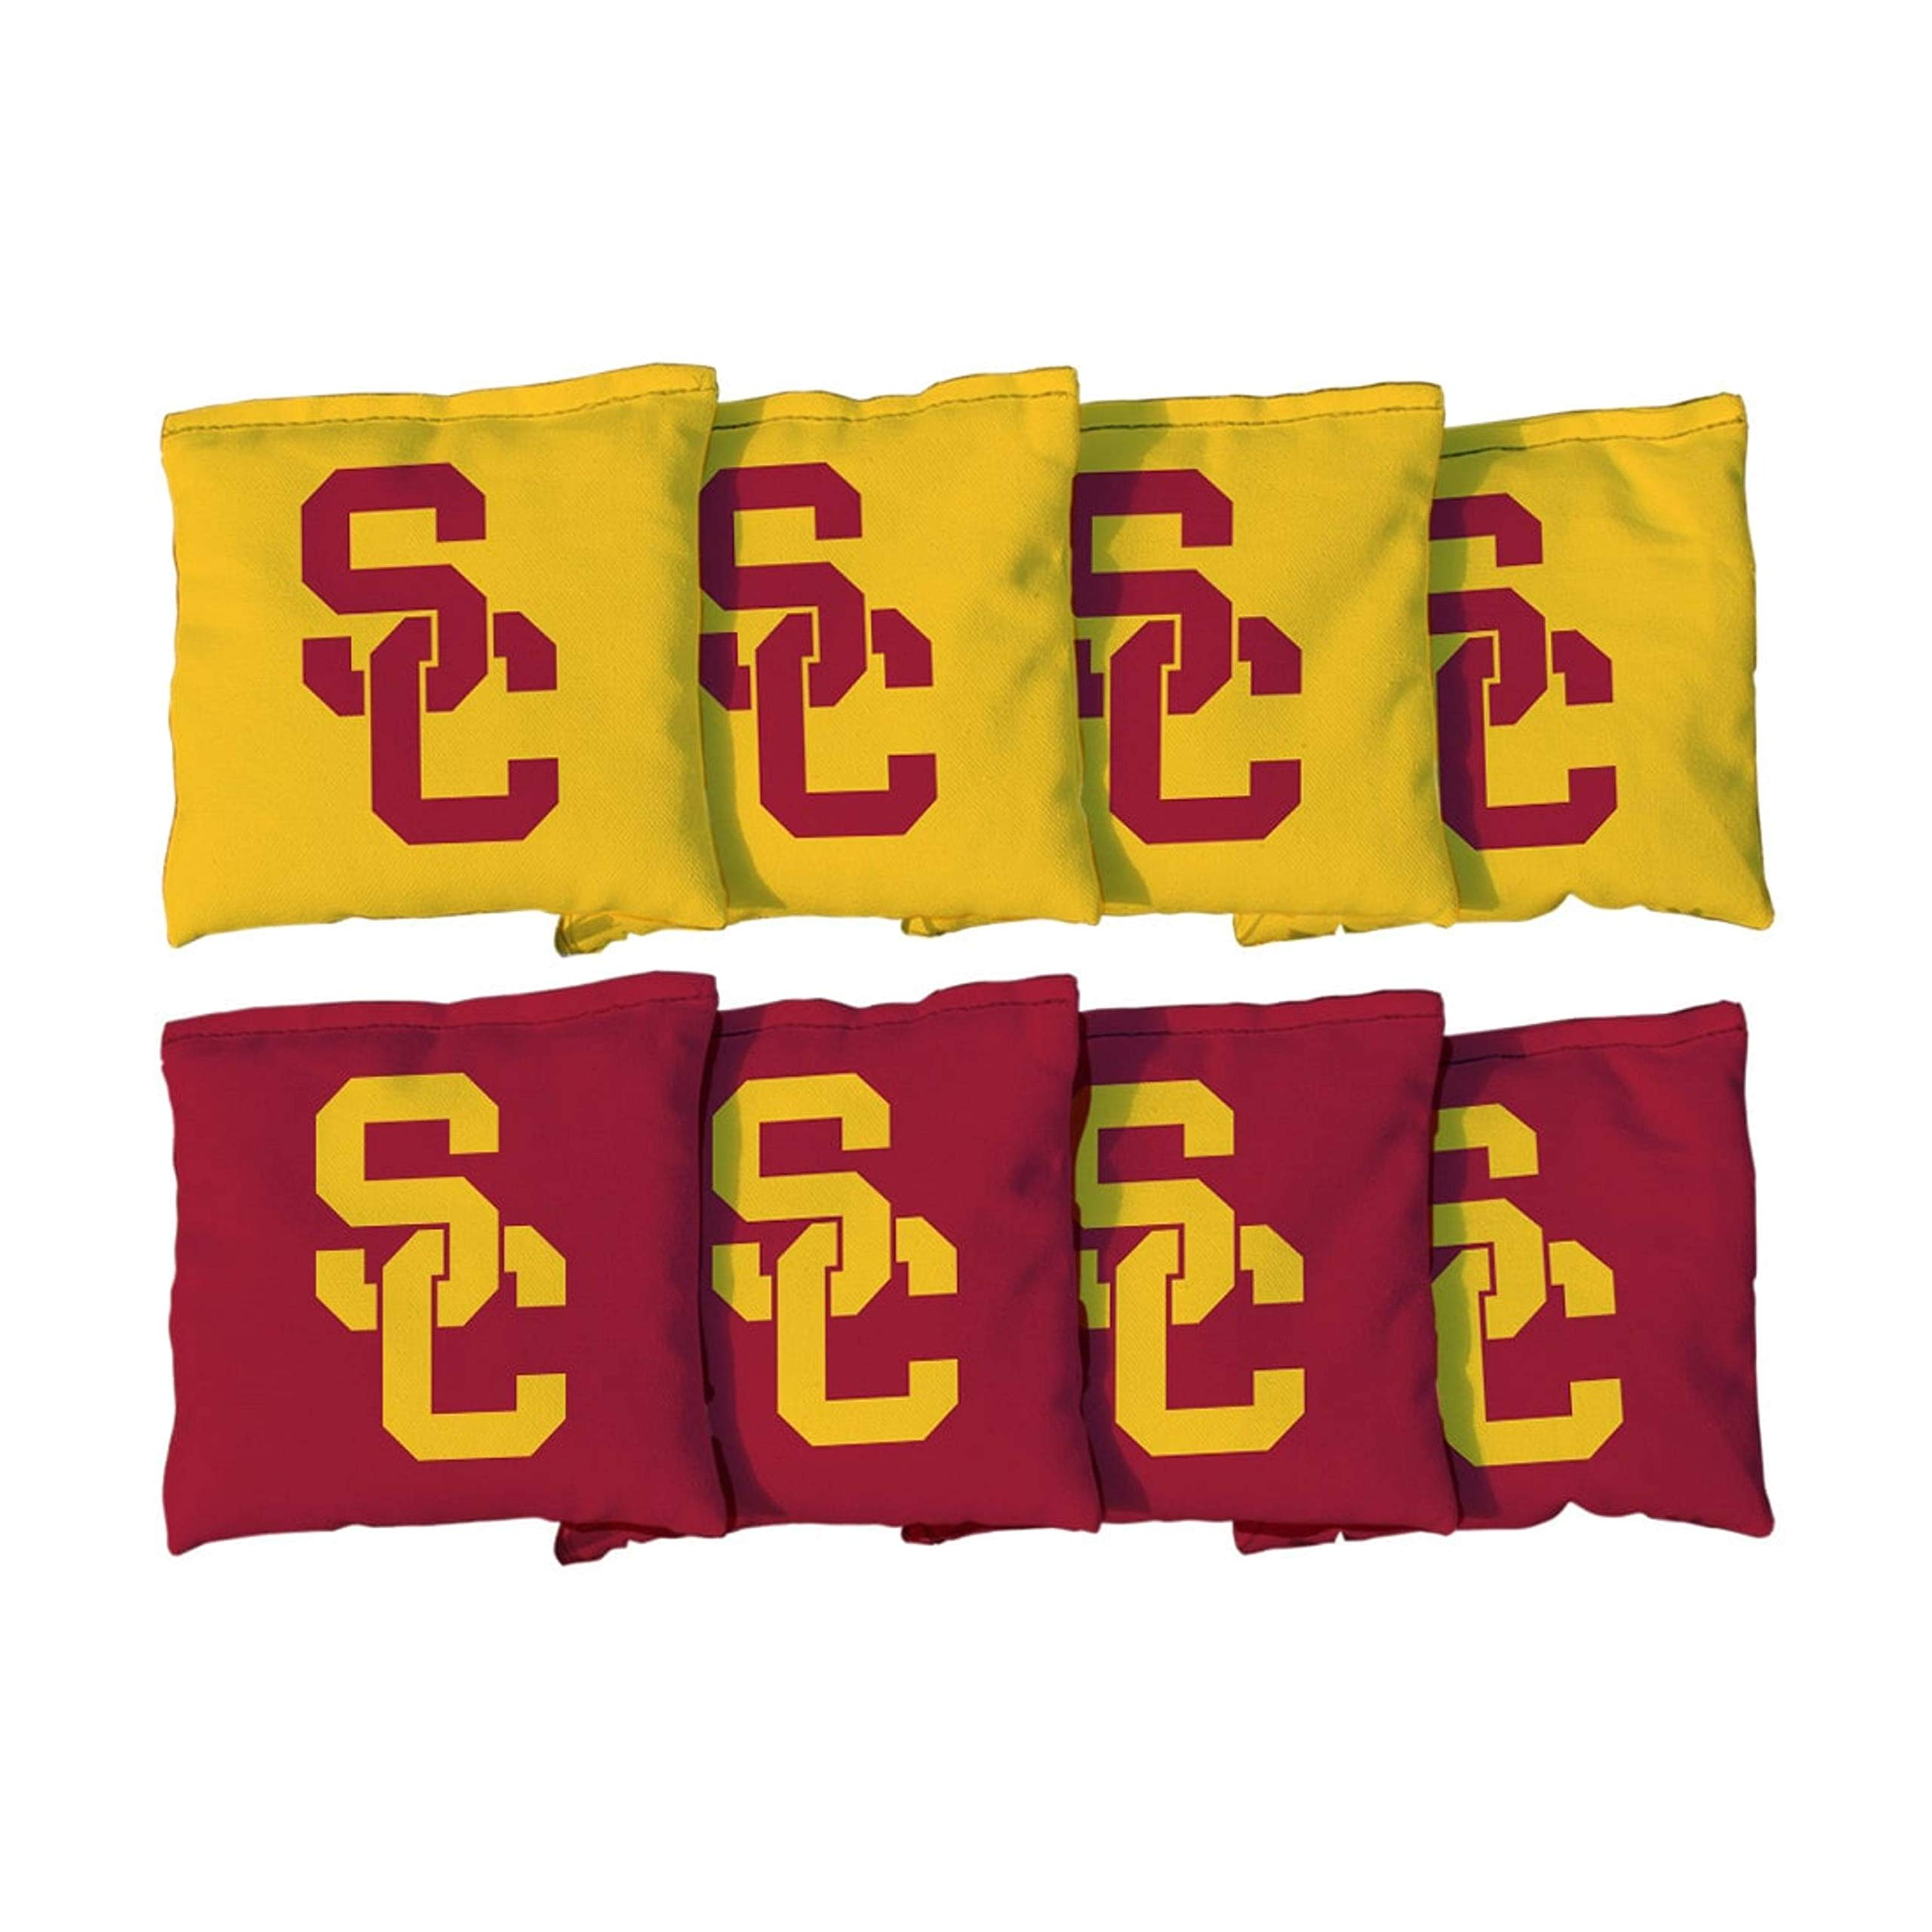 Victory Tailgate NCAA Collegiate Regulation Cornhole Game Bag Set (8 Bags Included, Corn-Filled) - Southern California Trojans by Victory Tailgate